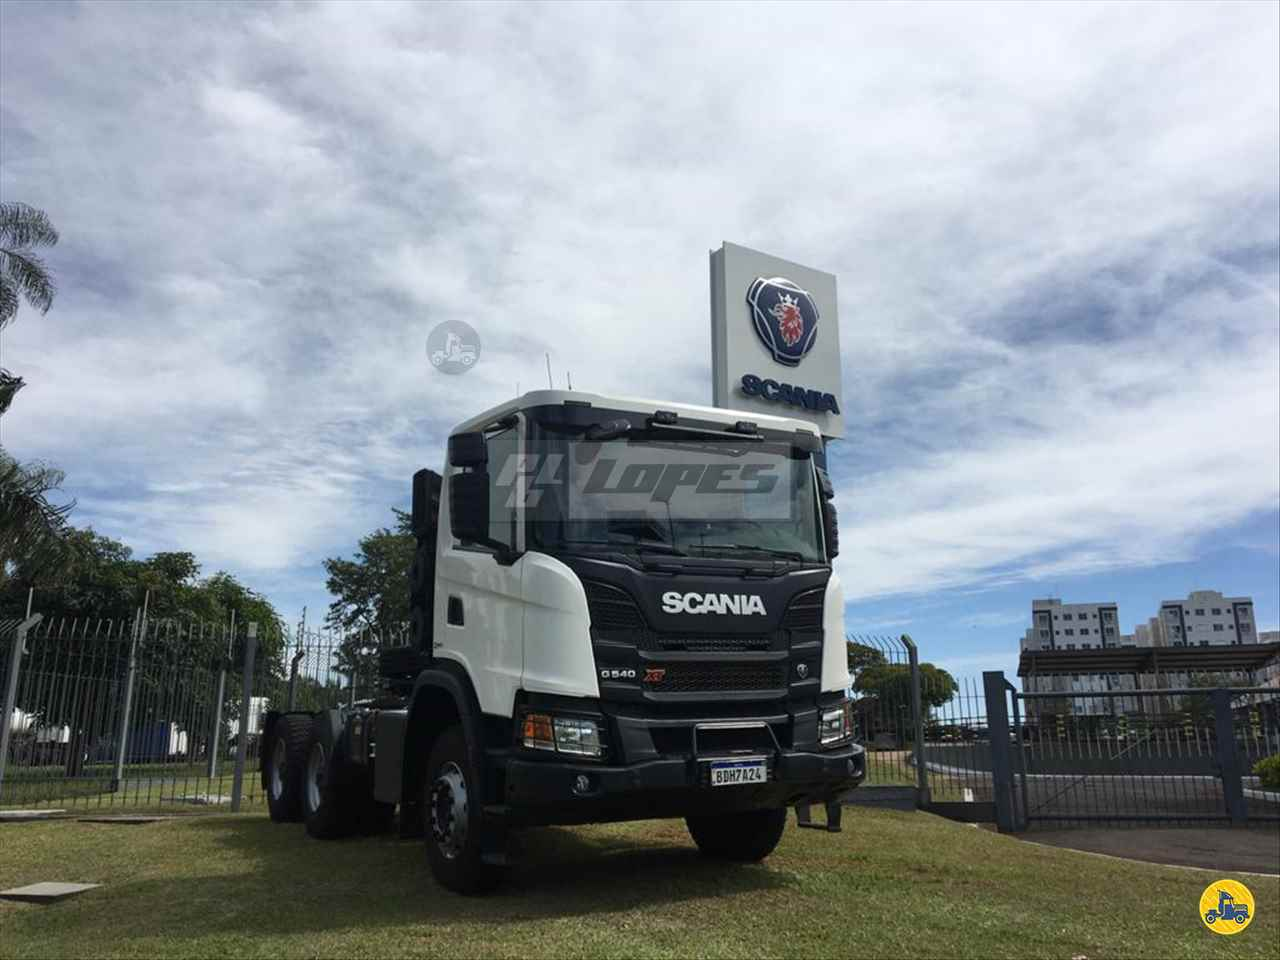 SCANIA SCANIA 540 32715km 2018/2019 P.B. Lopes - Scania